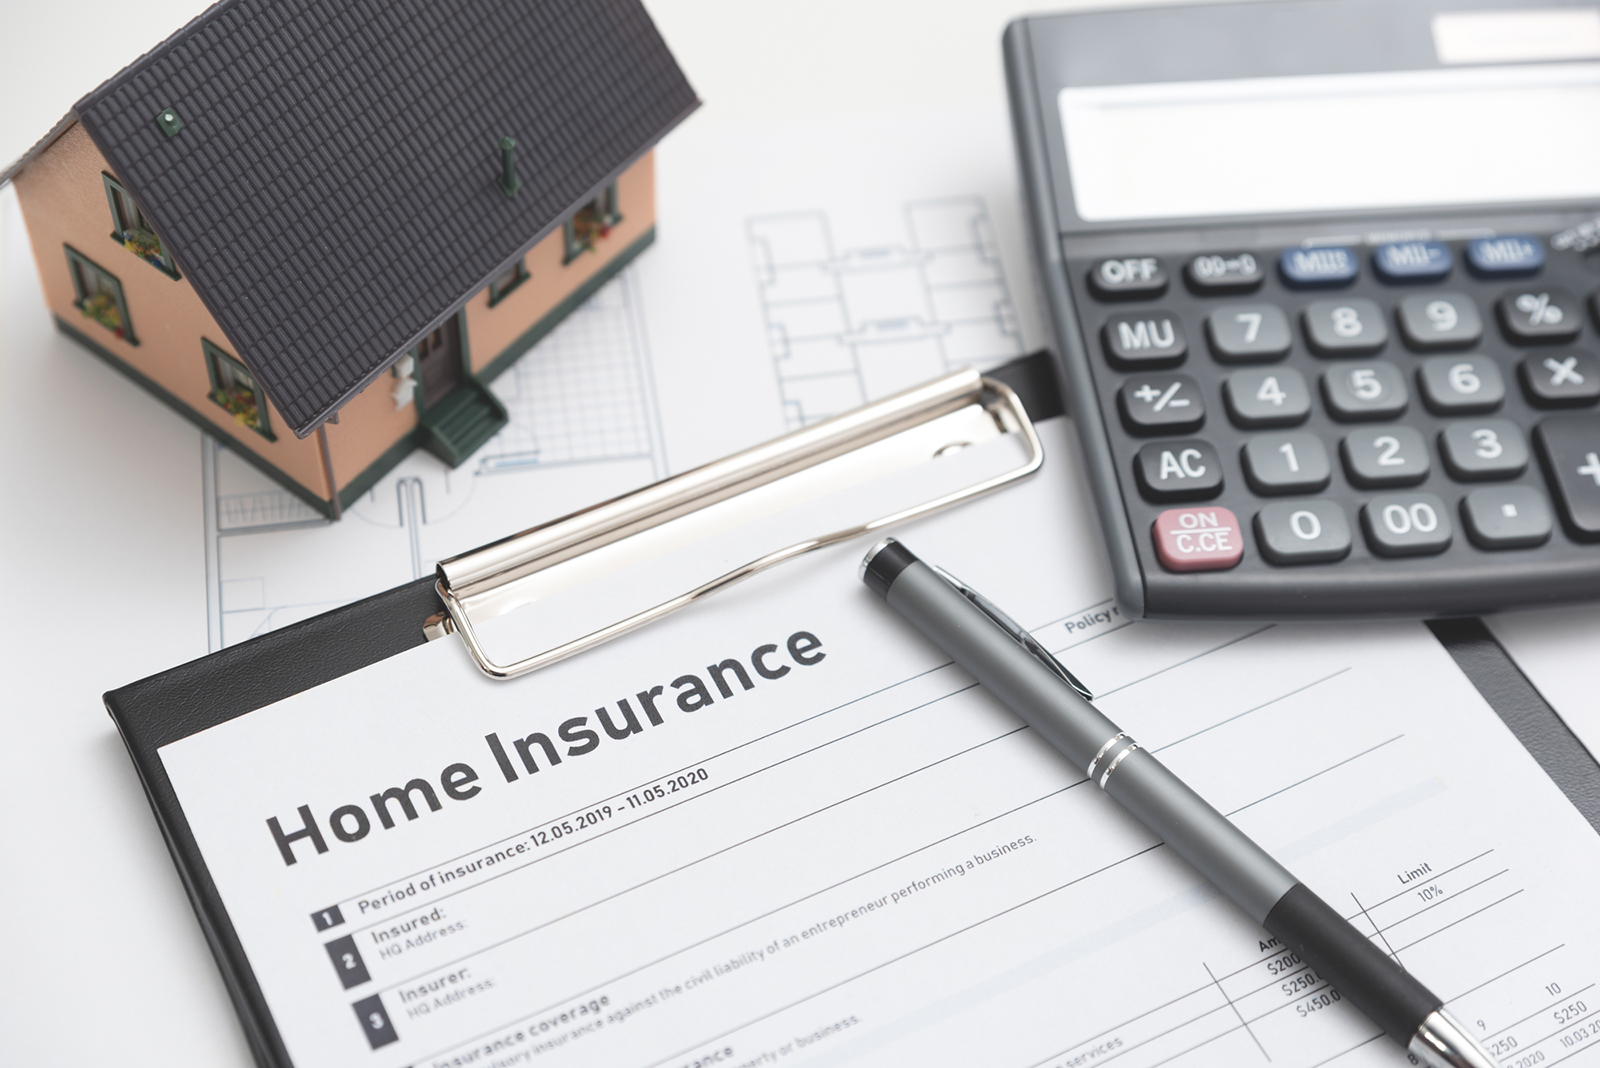 Home Insurance in Delhi, NY